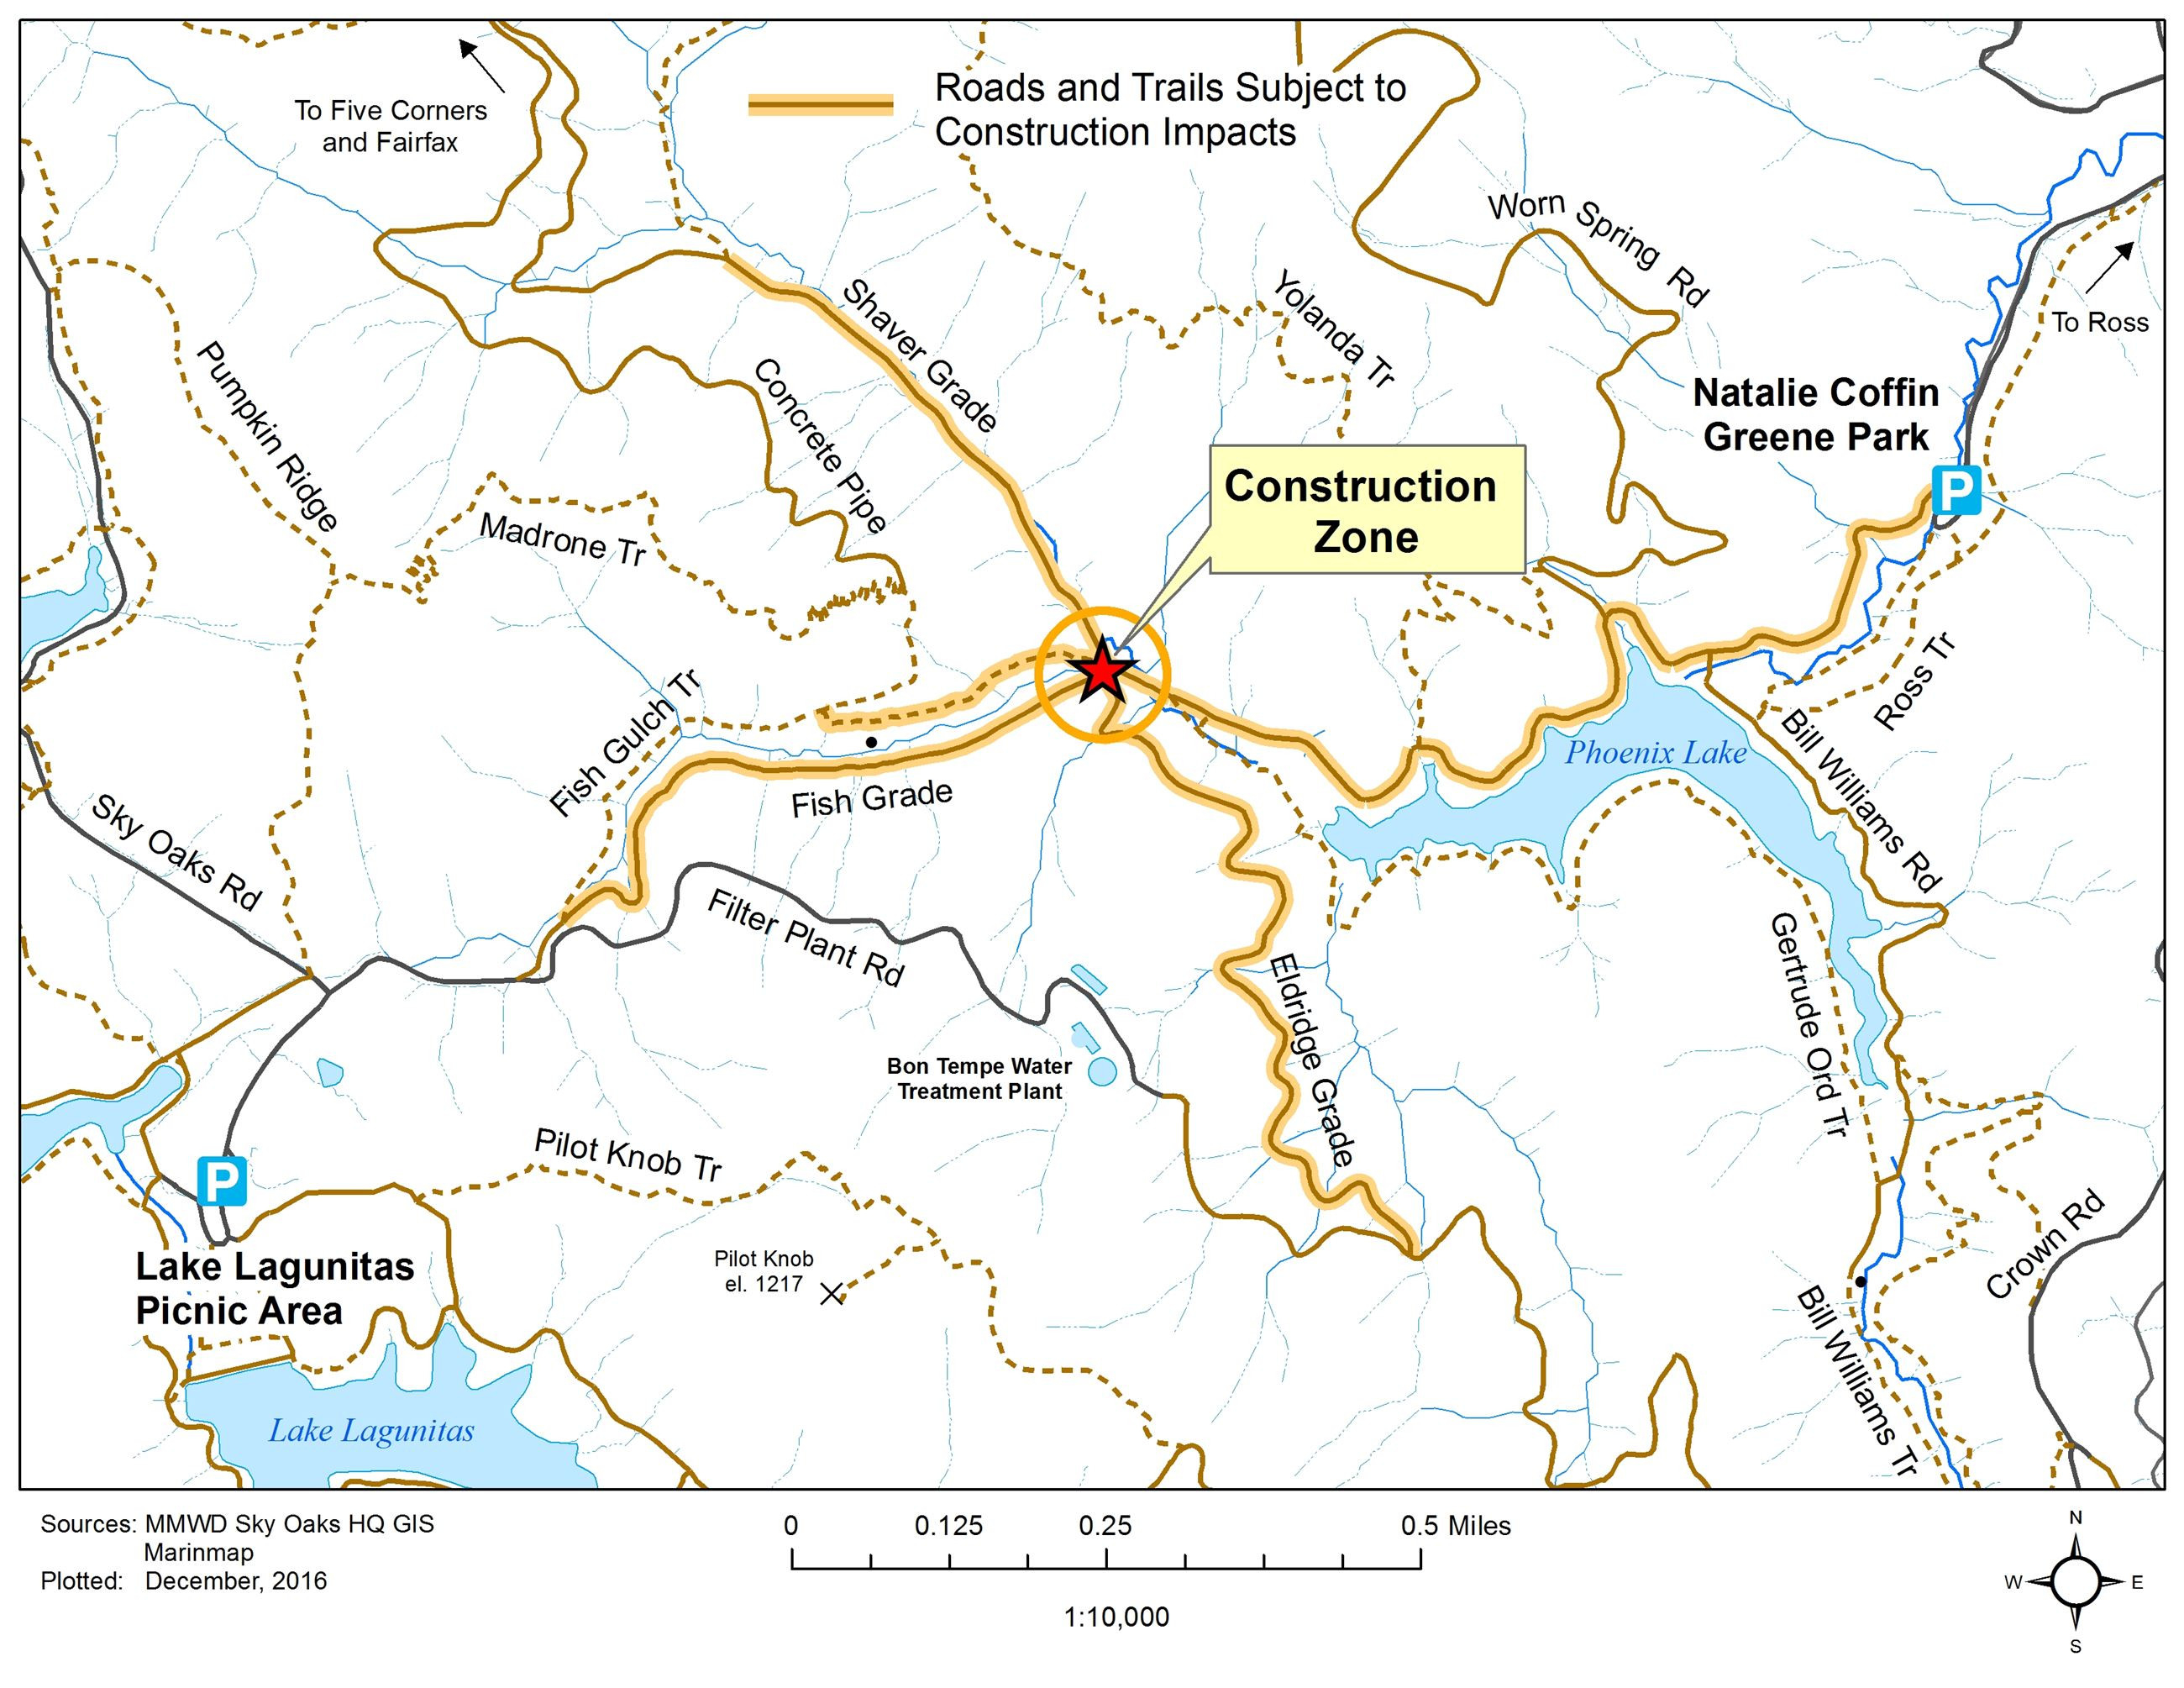 California Traffic Conditions Map Detailed Marin Municipal Water - California Traffic Conditions Map